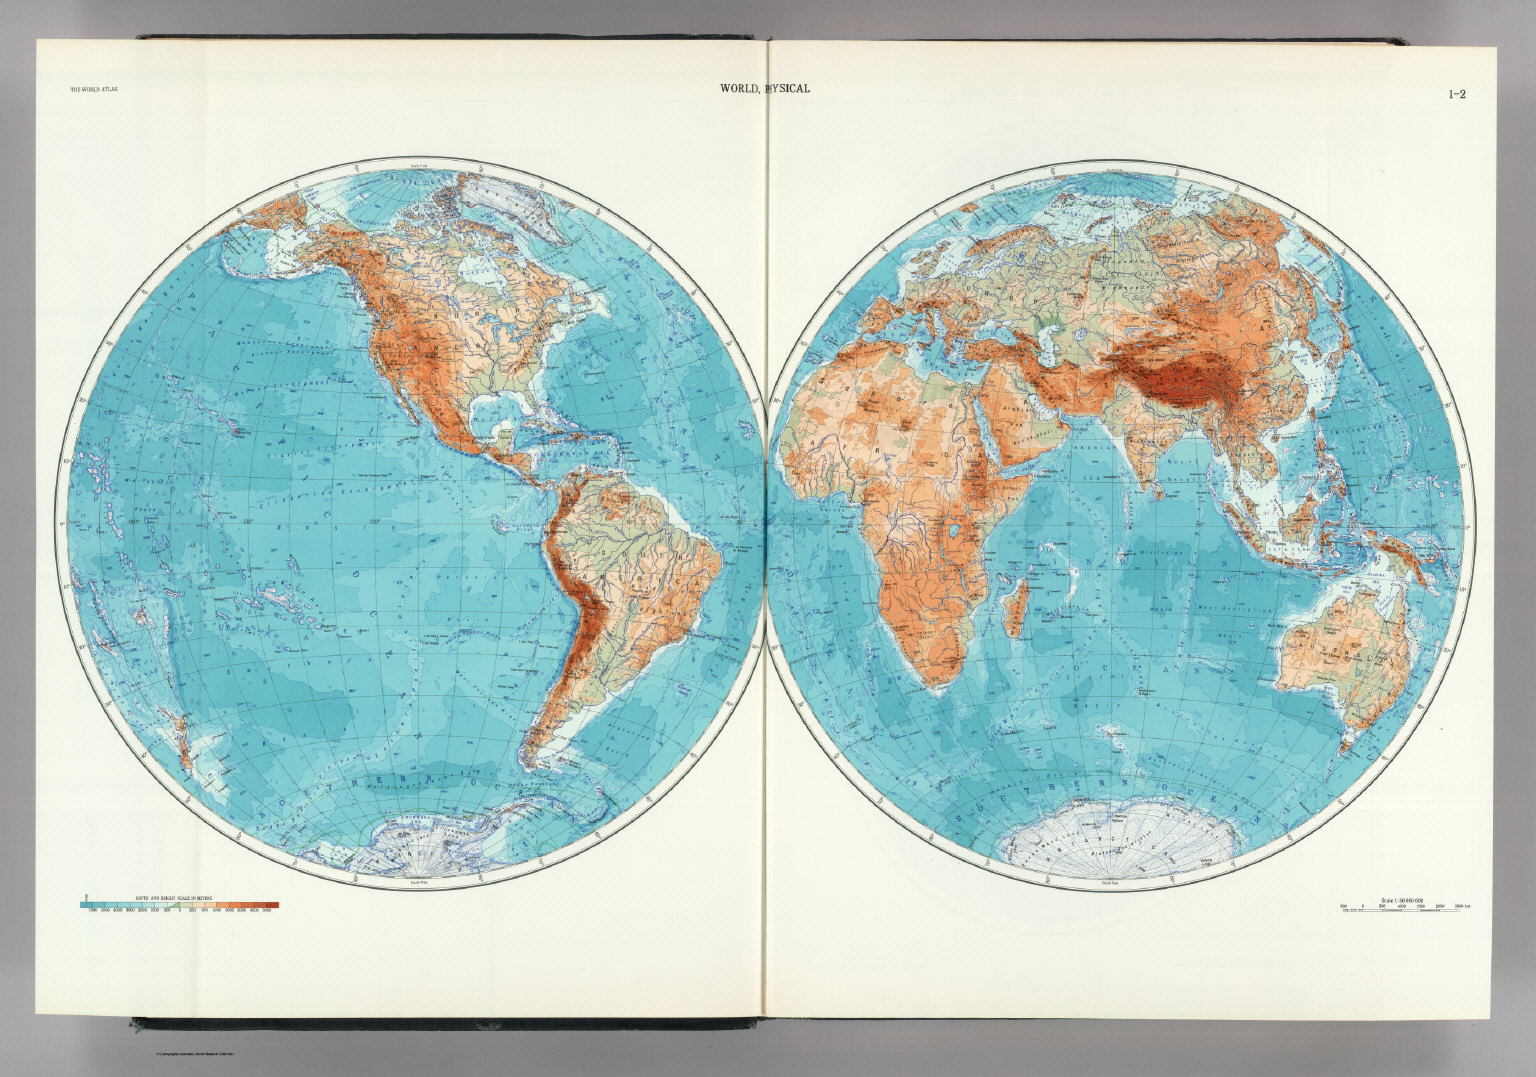 12 World Physical The World Atlas David Rumsey Historical – The World Map Atlas